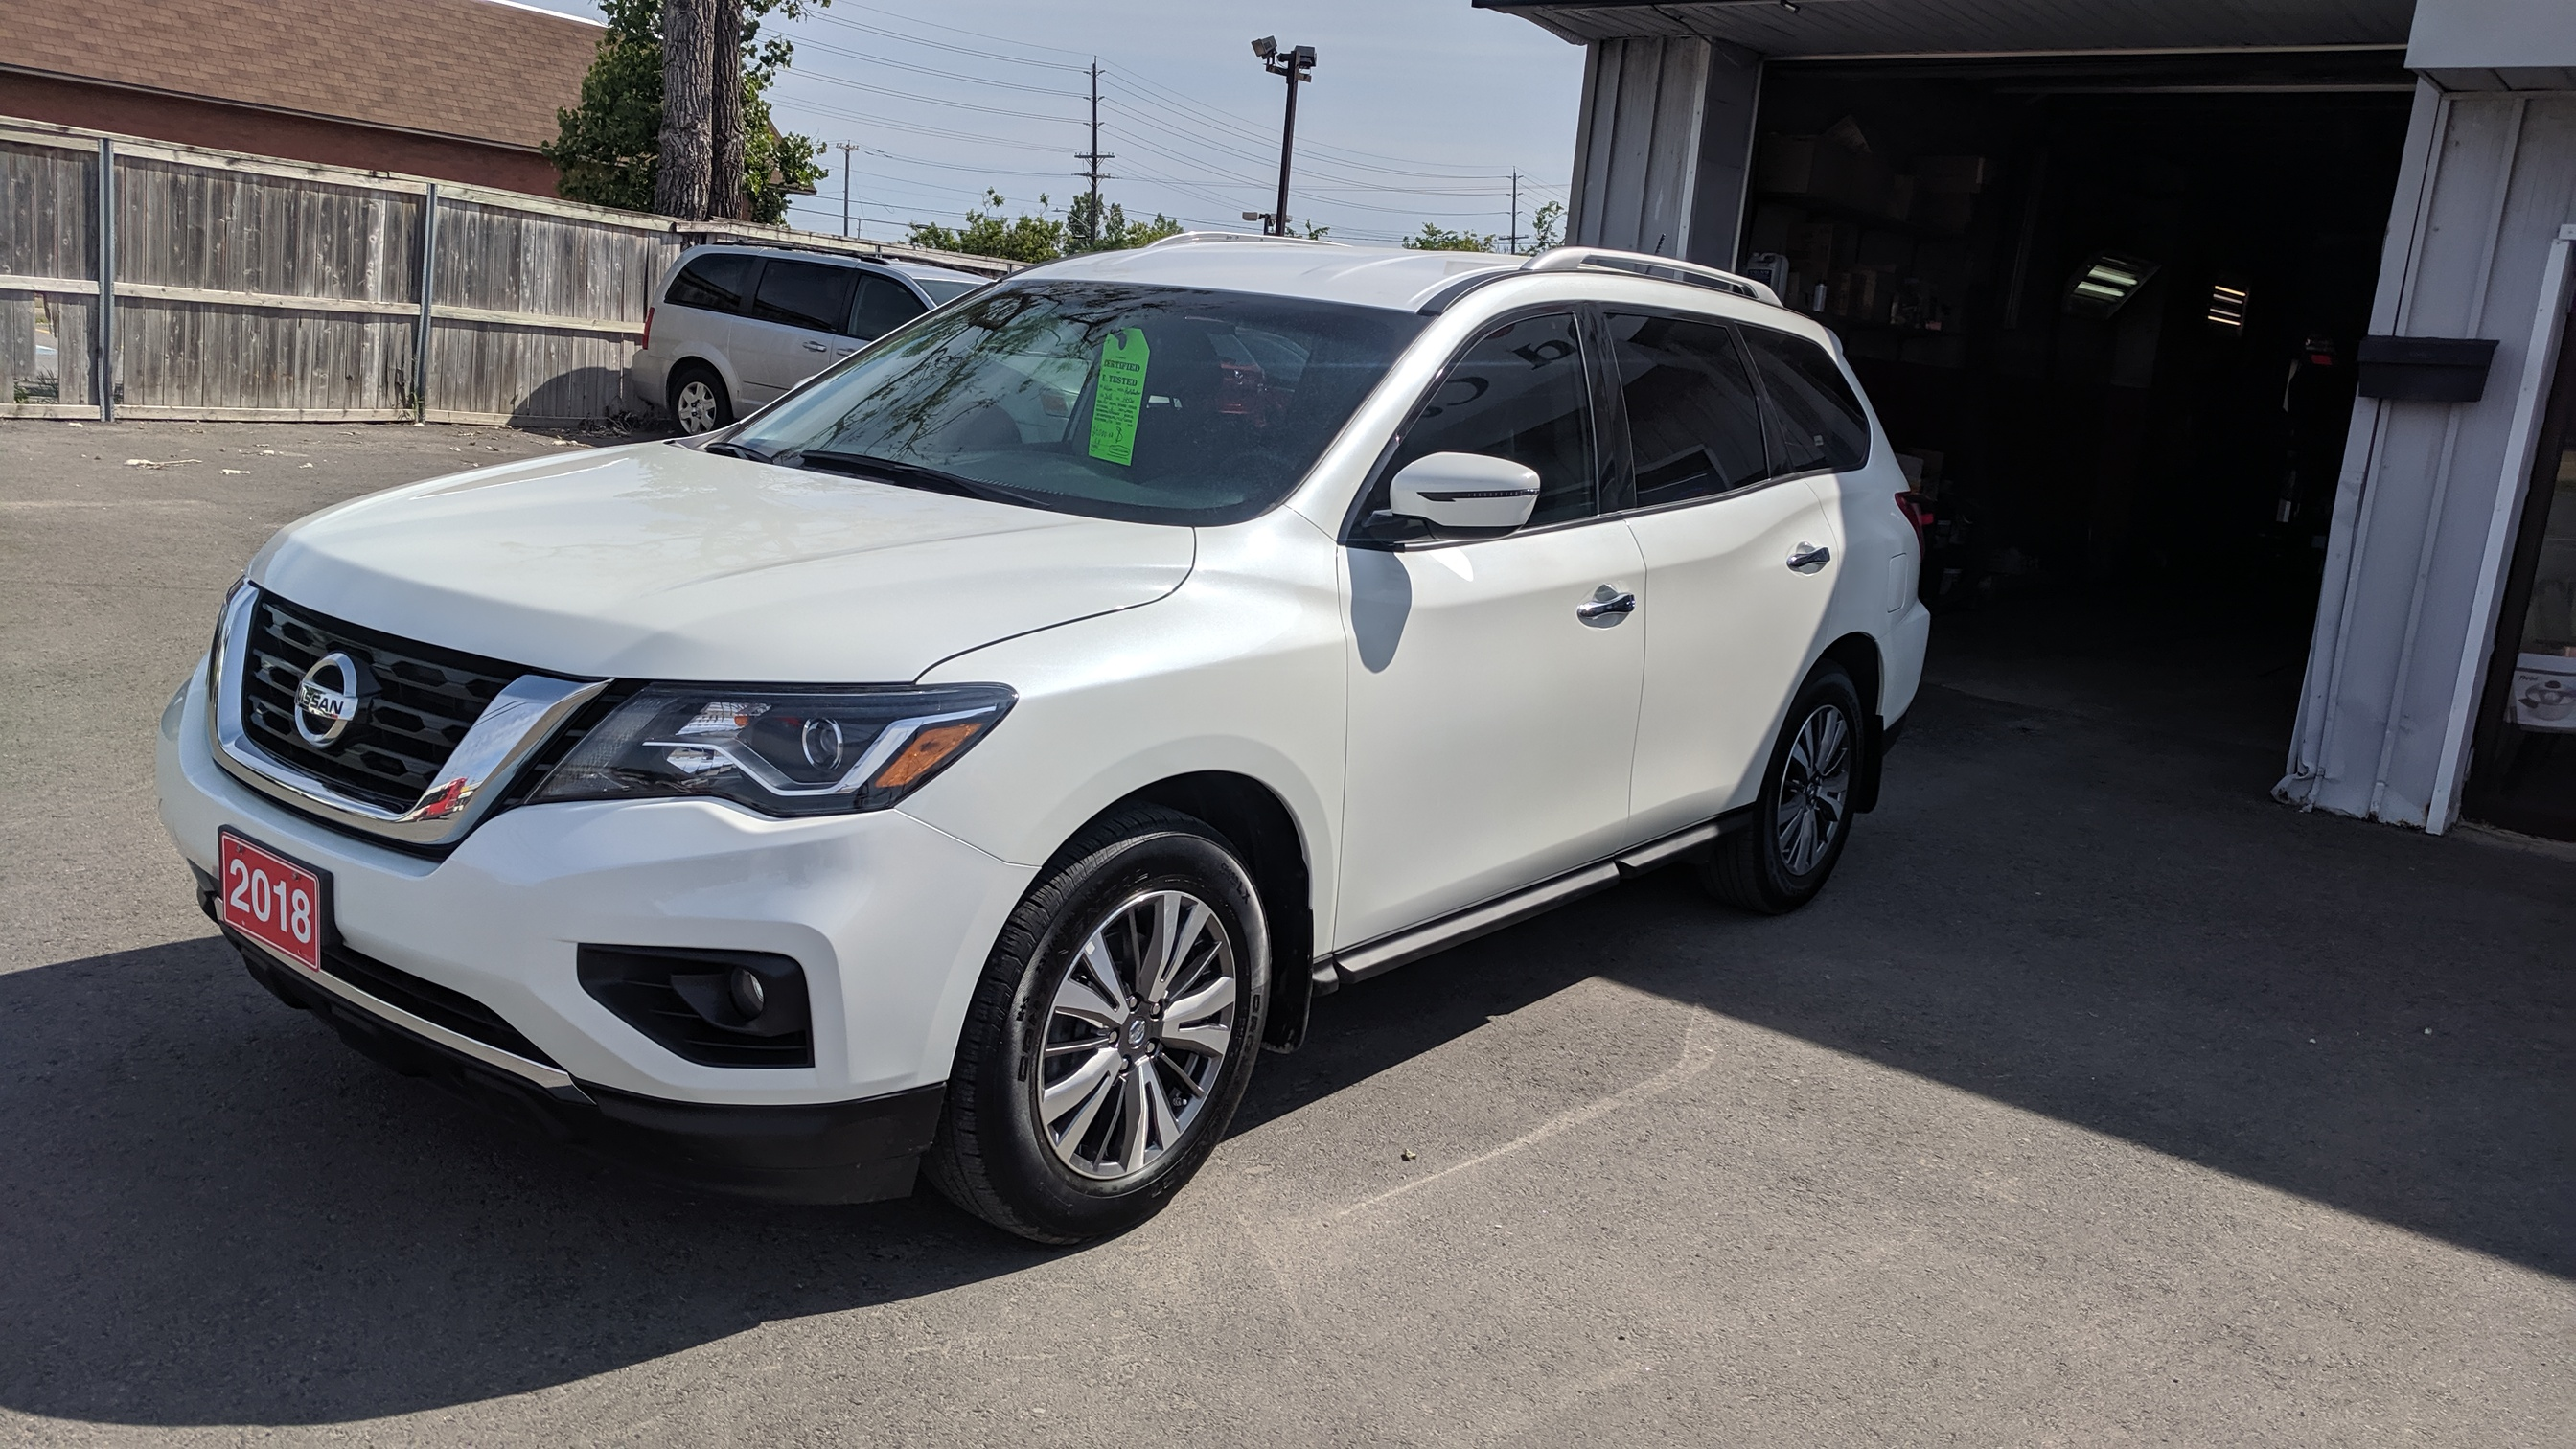 2018 Nissan Pathfinder Sv Tech Awd Sold Bisan Auto